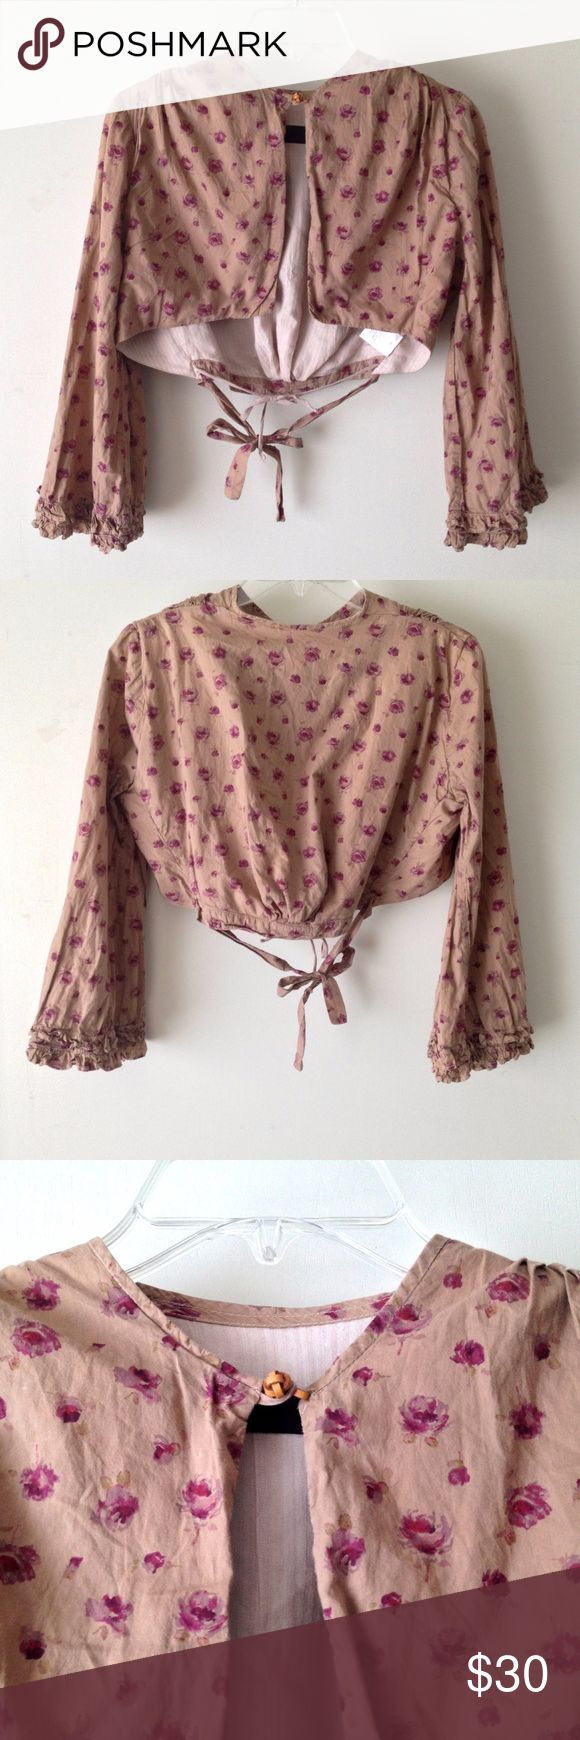 Allsaints Crop Jacket Bolero, size 8 -- AllSaints Crop Jacket / Bolero -- Condition: regular wear and tear, some fading from laundering Color: Beige with magenta floral pattern  Size: US 8 / UK 10 / EU 38  - Flared ruffled sleeves - Lined bodice - Leather lattice button - Ties to adjust fit - Pleating  Length: ~ 13 inches Sleeve Length: ~ 19 inches Armpit to armpit: ~ 19.5 inches All Saints Jackets & Coats